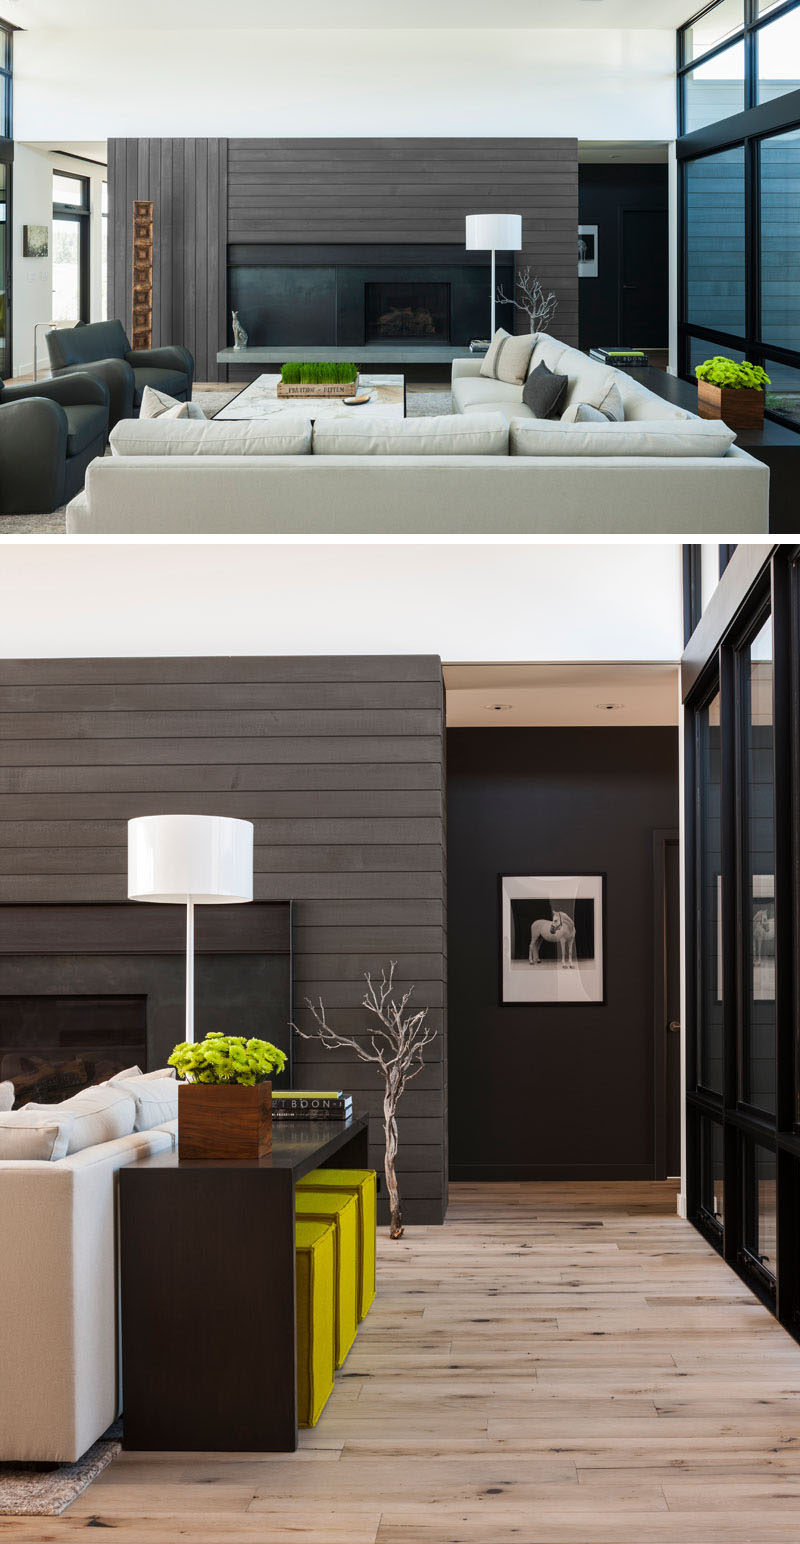 This modern living room features a stained cedar wood accent wall surrounds a black fireplace, while a light colored couch, high ceilings and plenty of windows help to keep the interior bright. #StainedCedar #LivingRoom #InteriorDesign